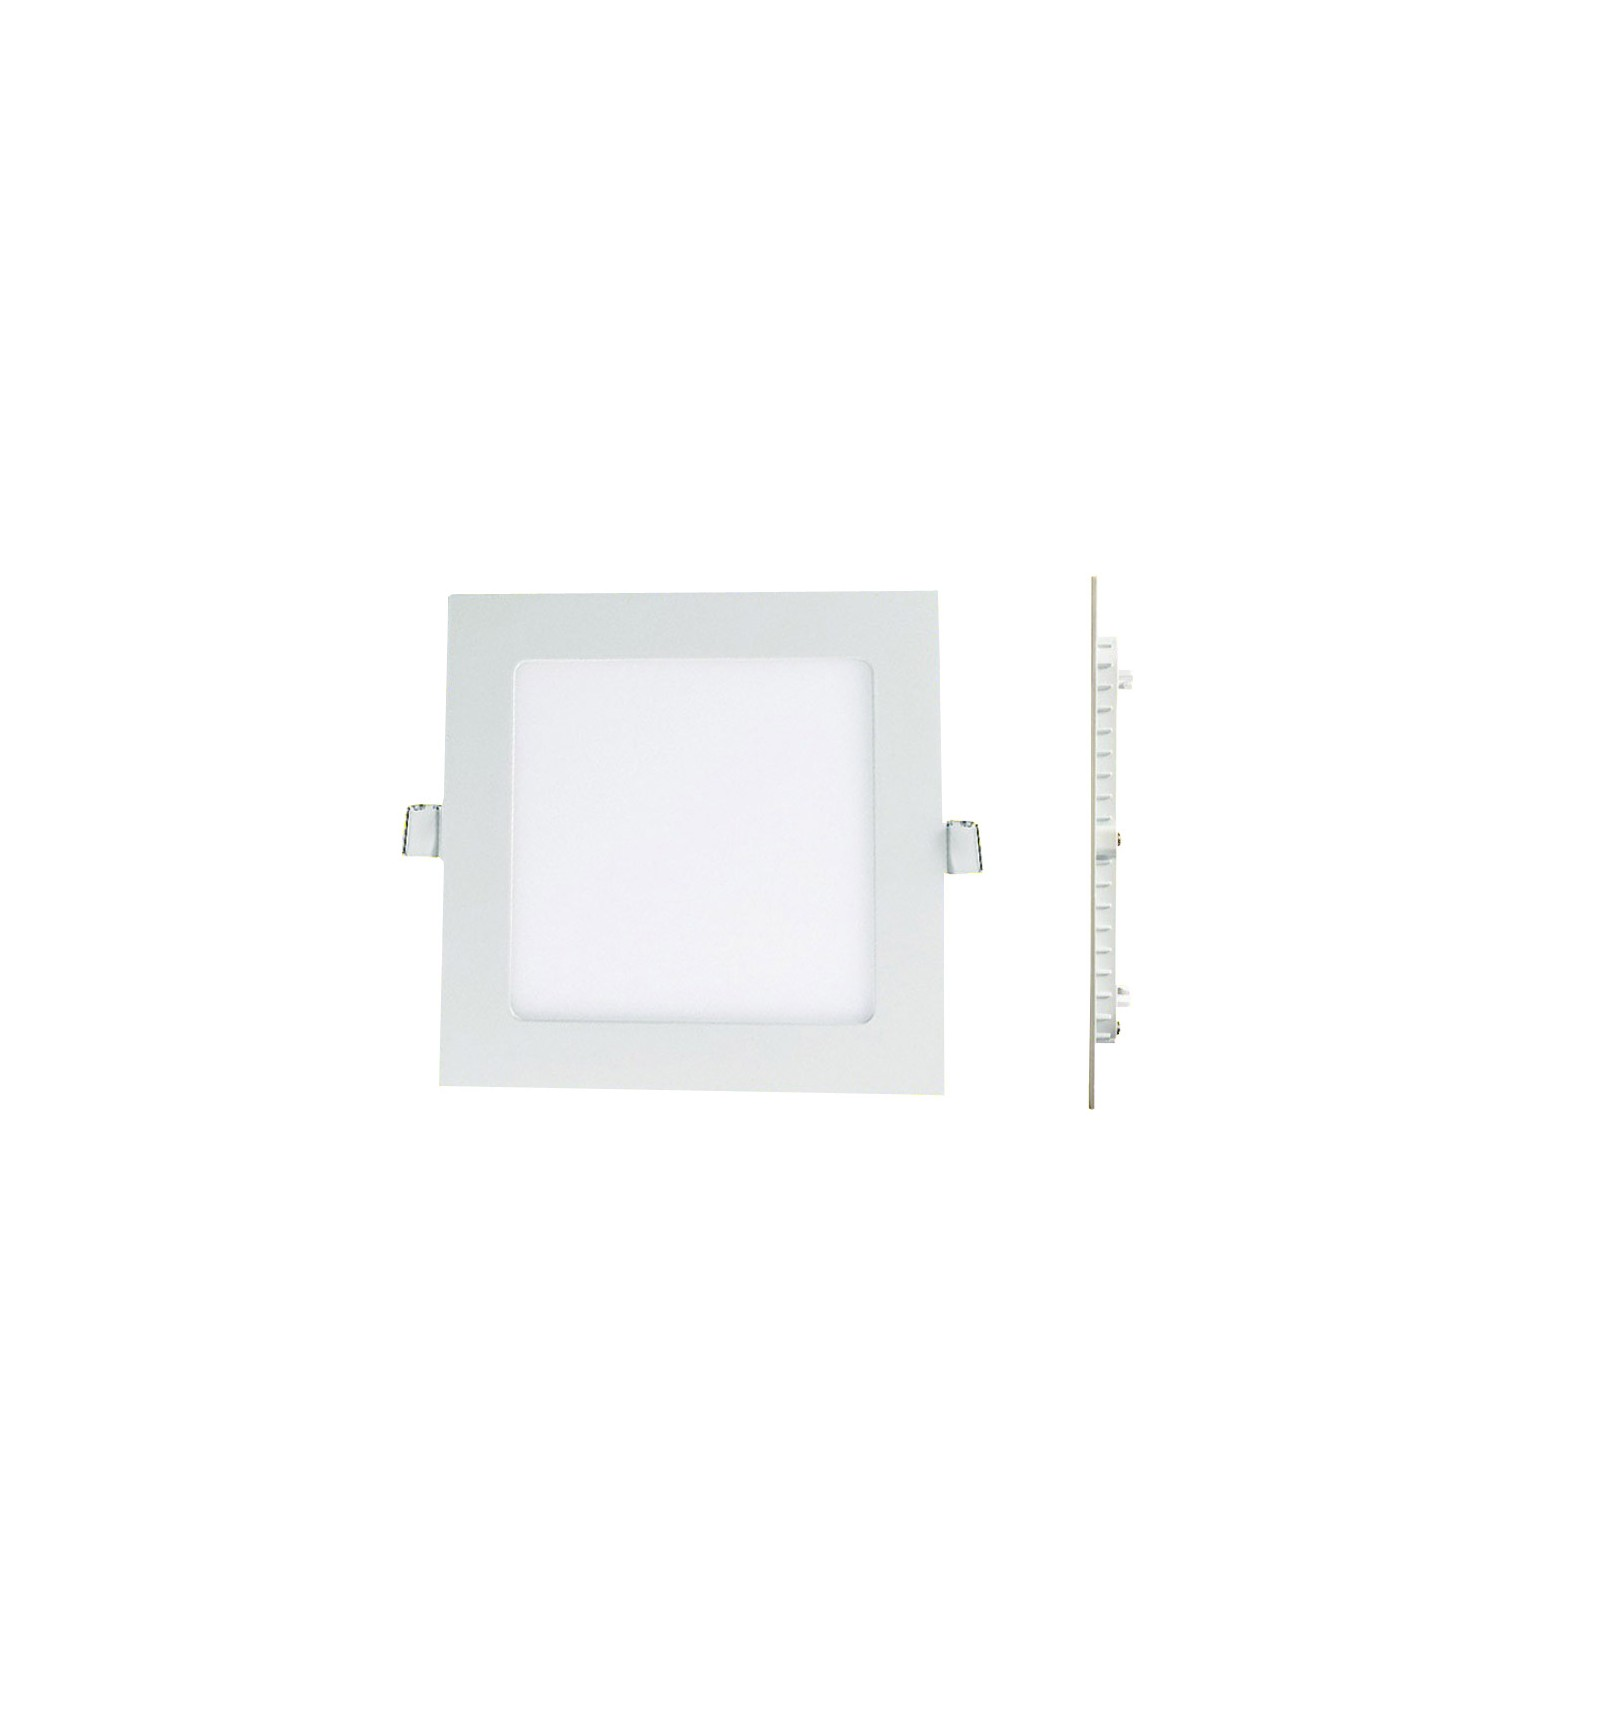 Spot Led Spot Slide Led Square Downlight Panel Extra Flat 6w Warm White 6000 K